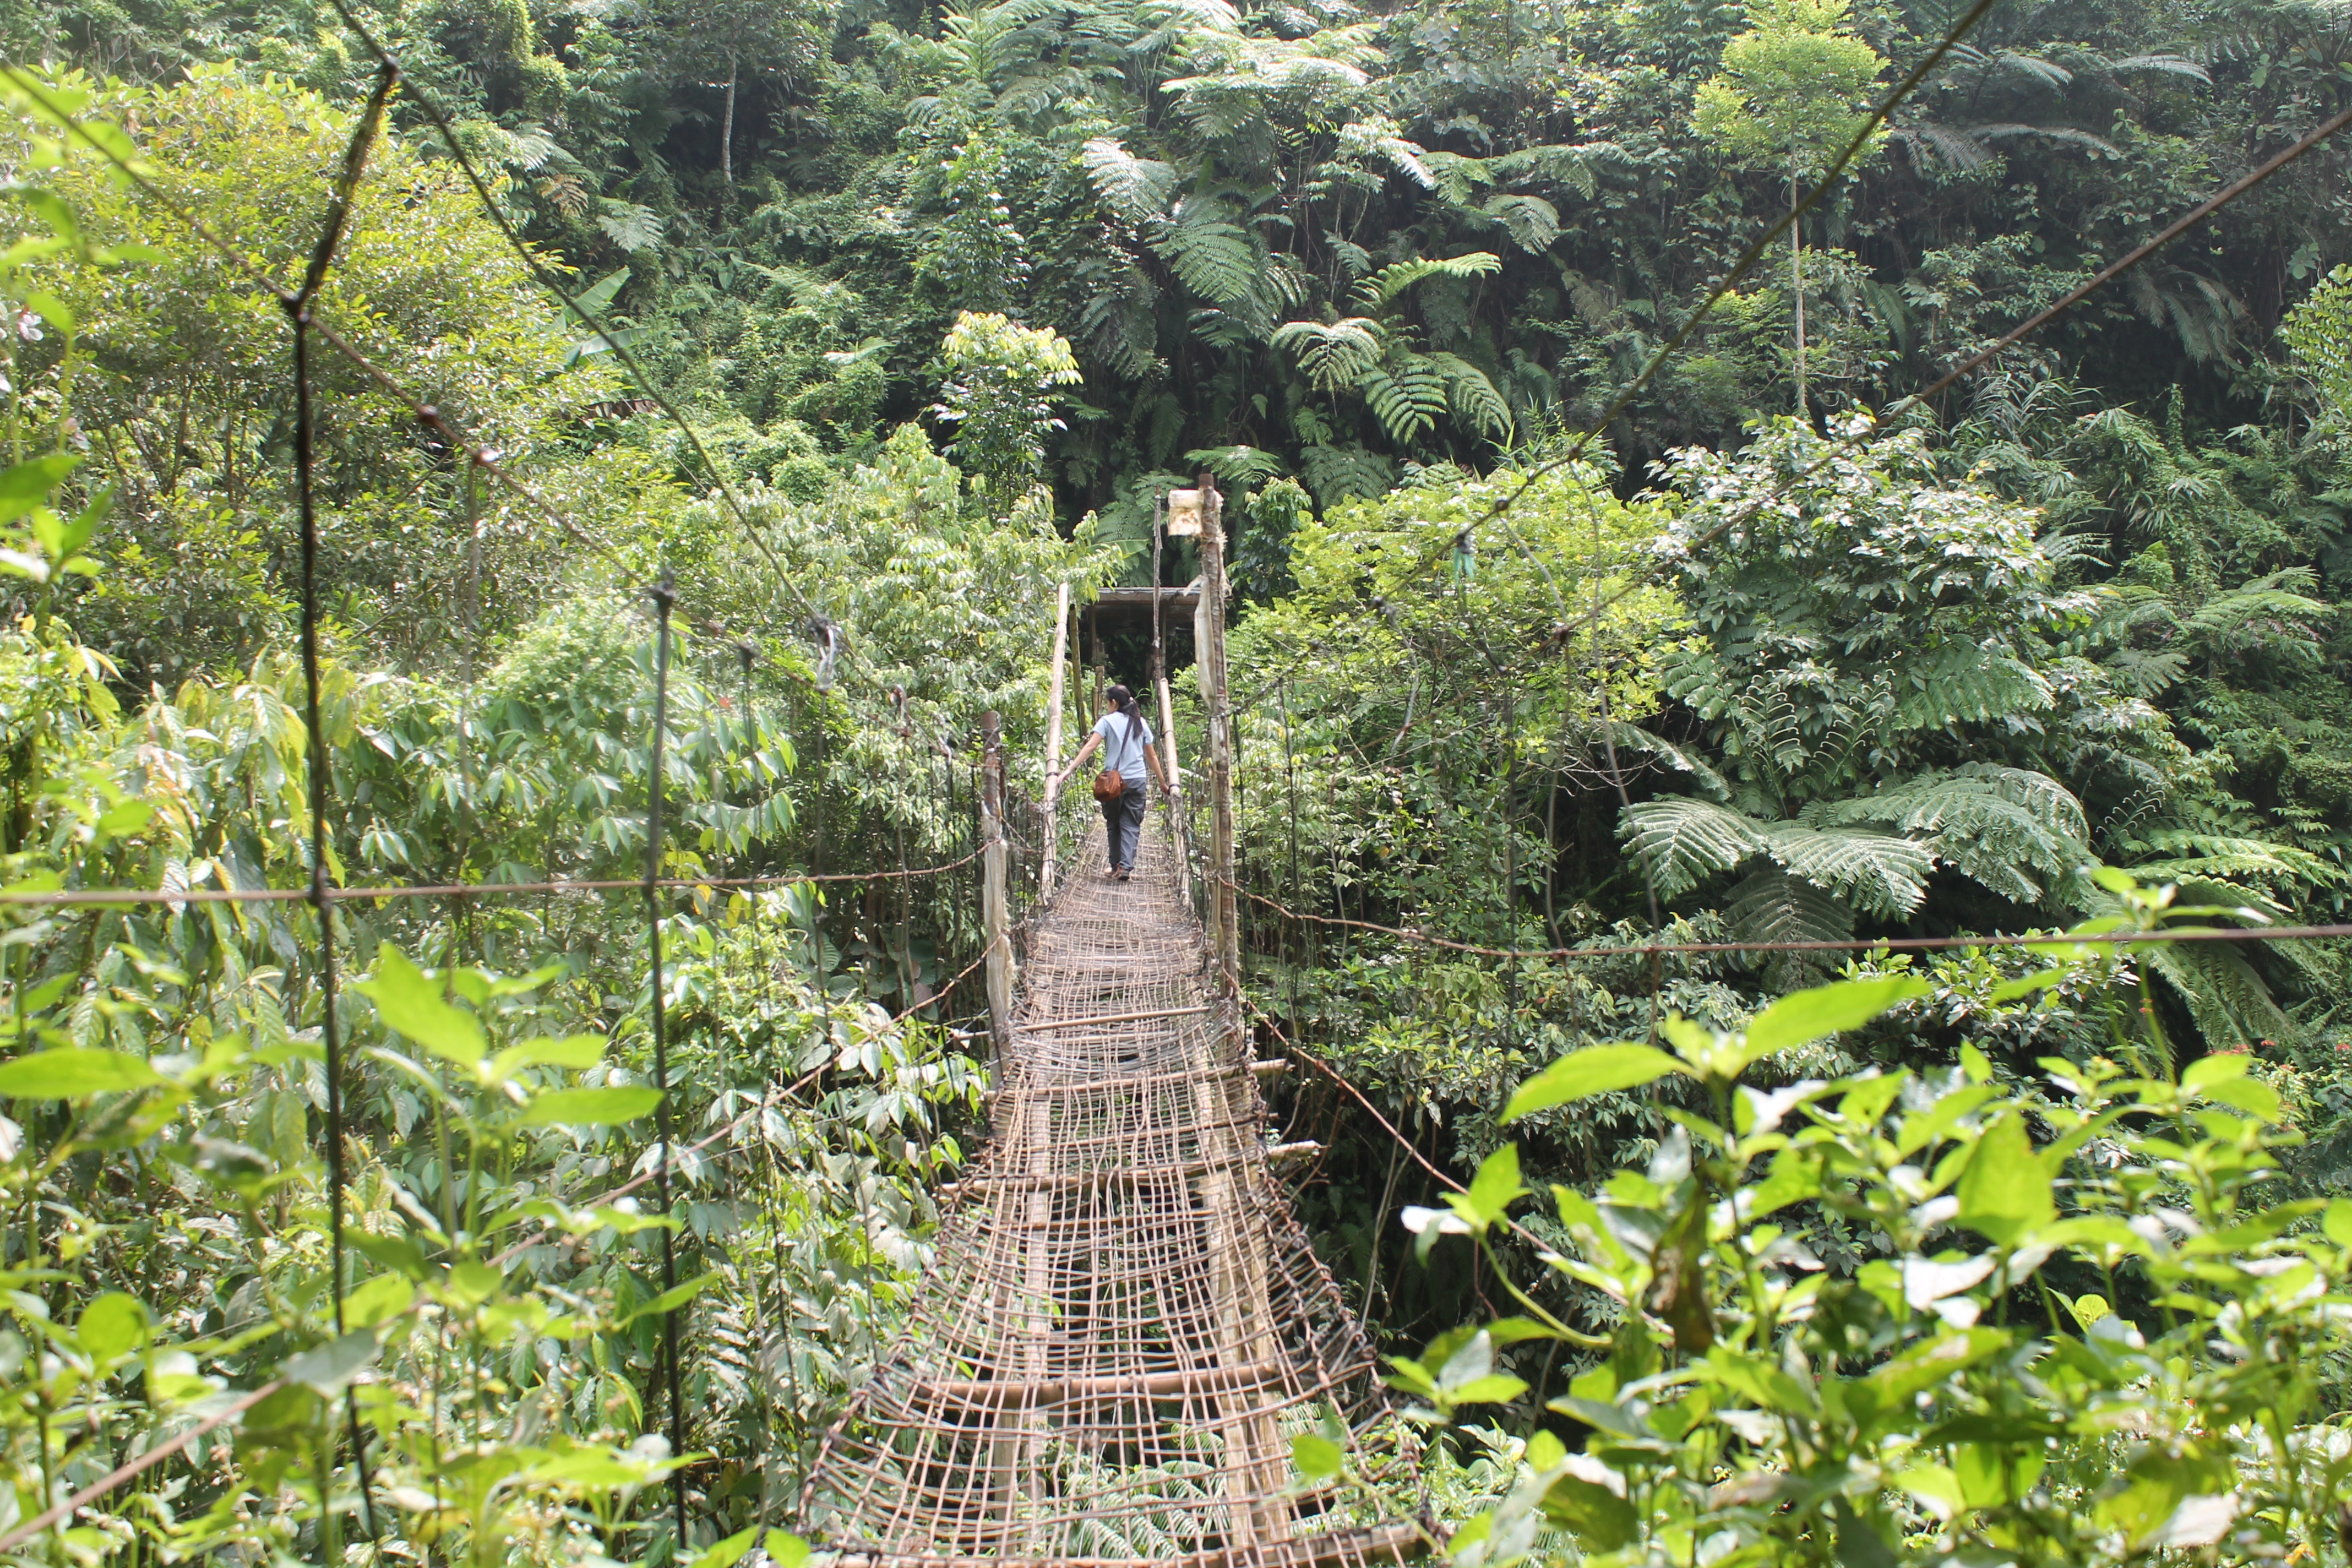 An exciting crossing high over the river on this hanging bridge. Photo by Trinket Constantino.